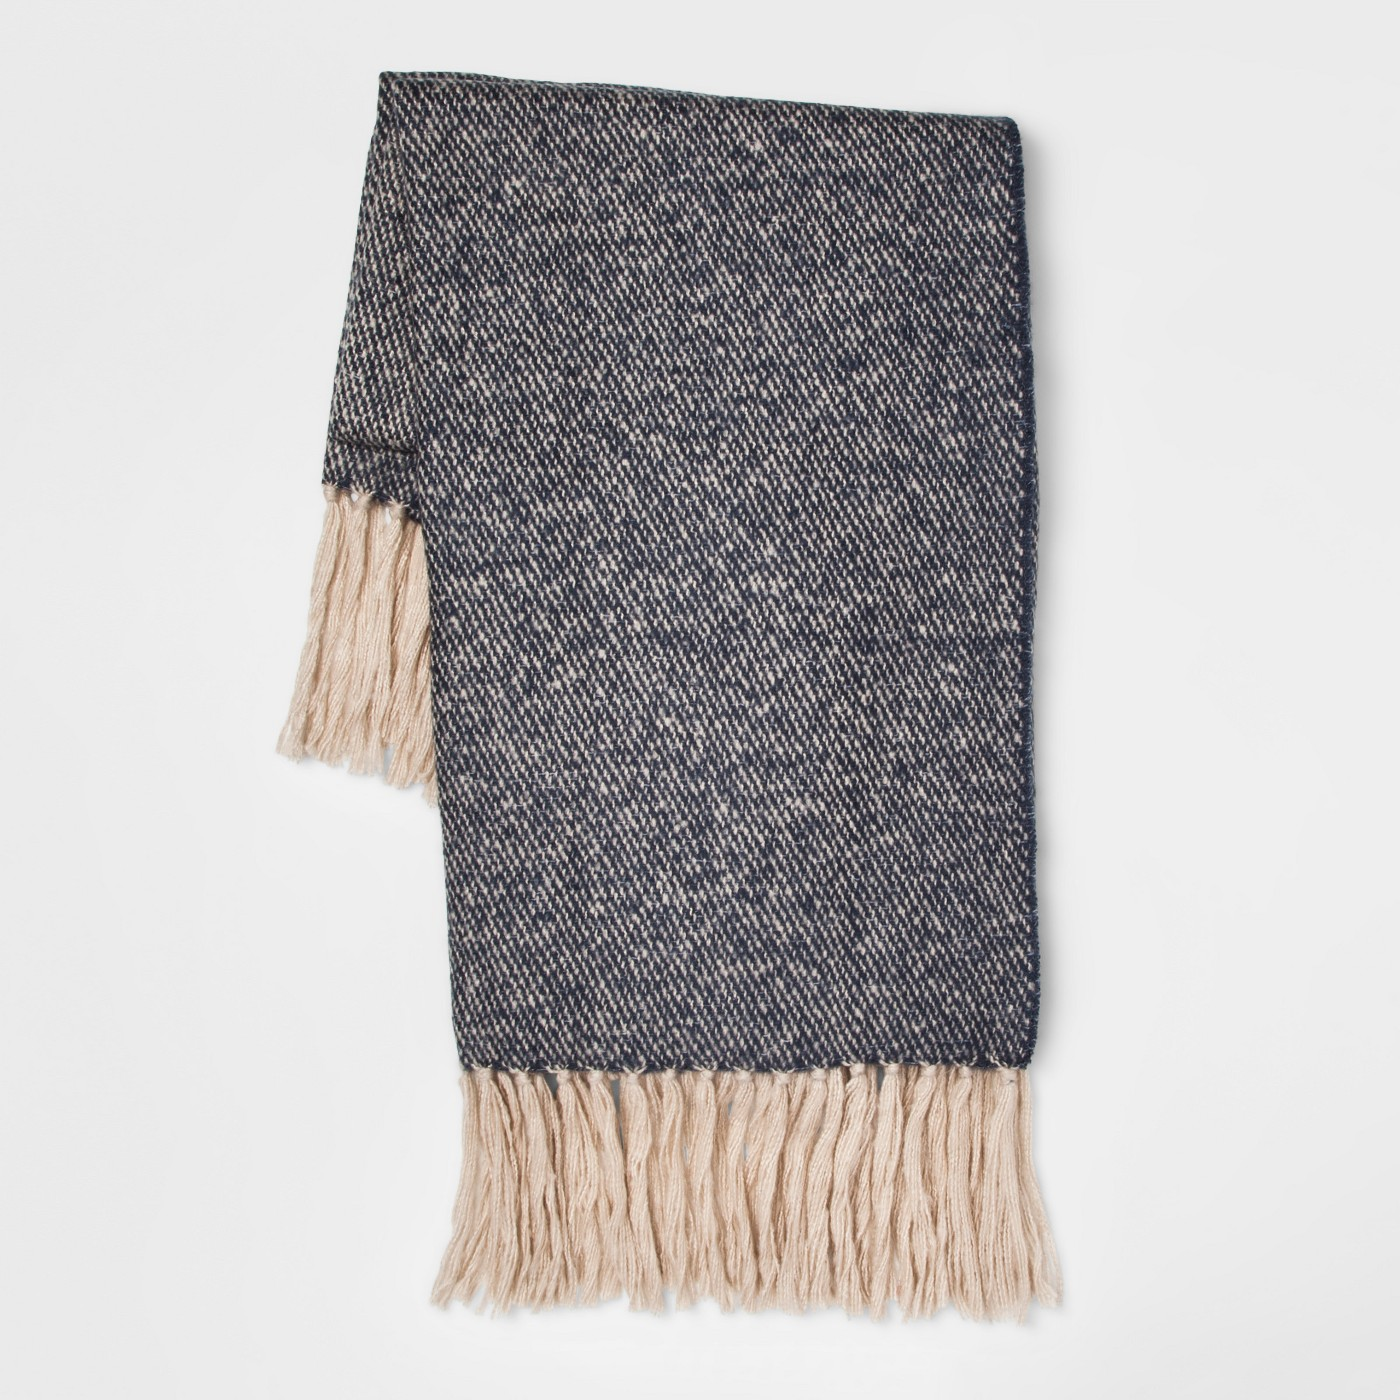 updating the house for autumn and winter - navy blue throw